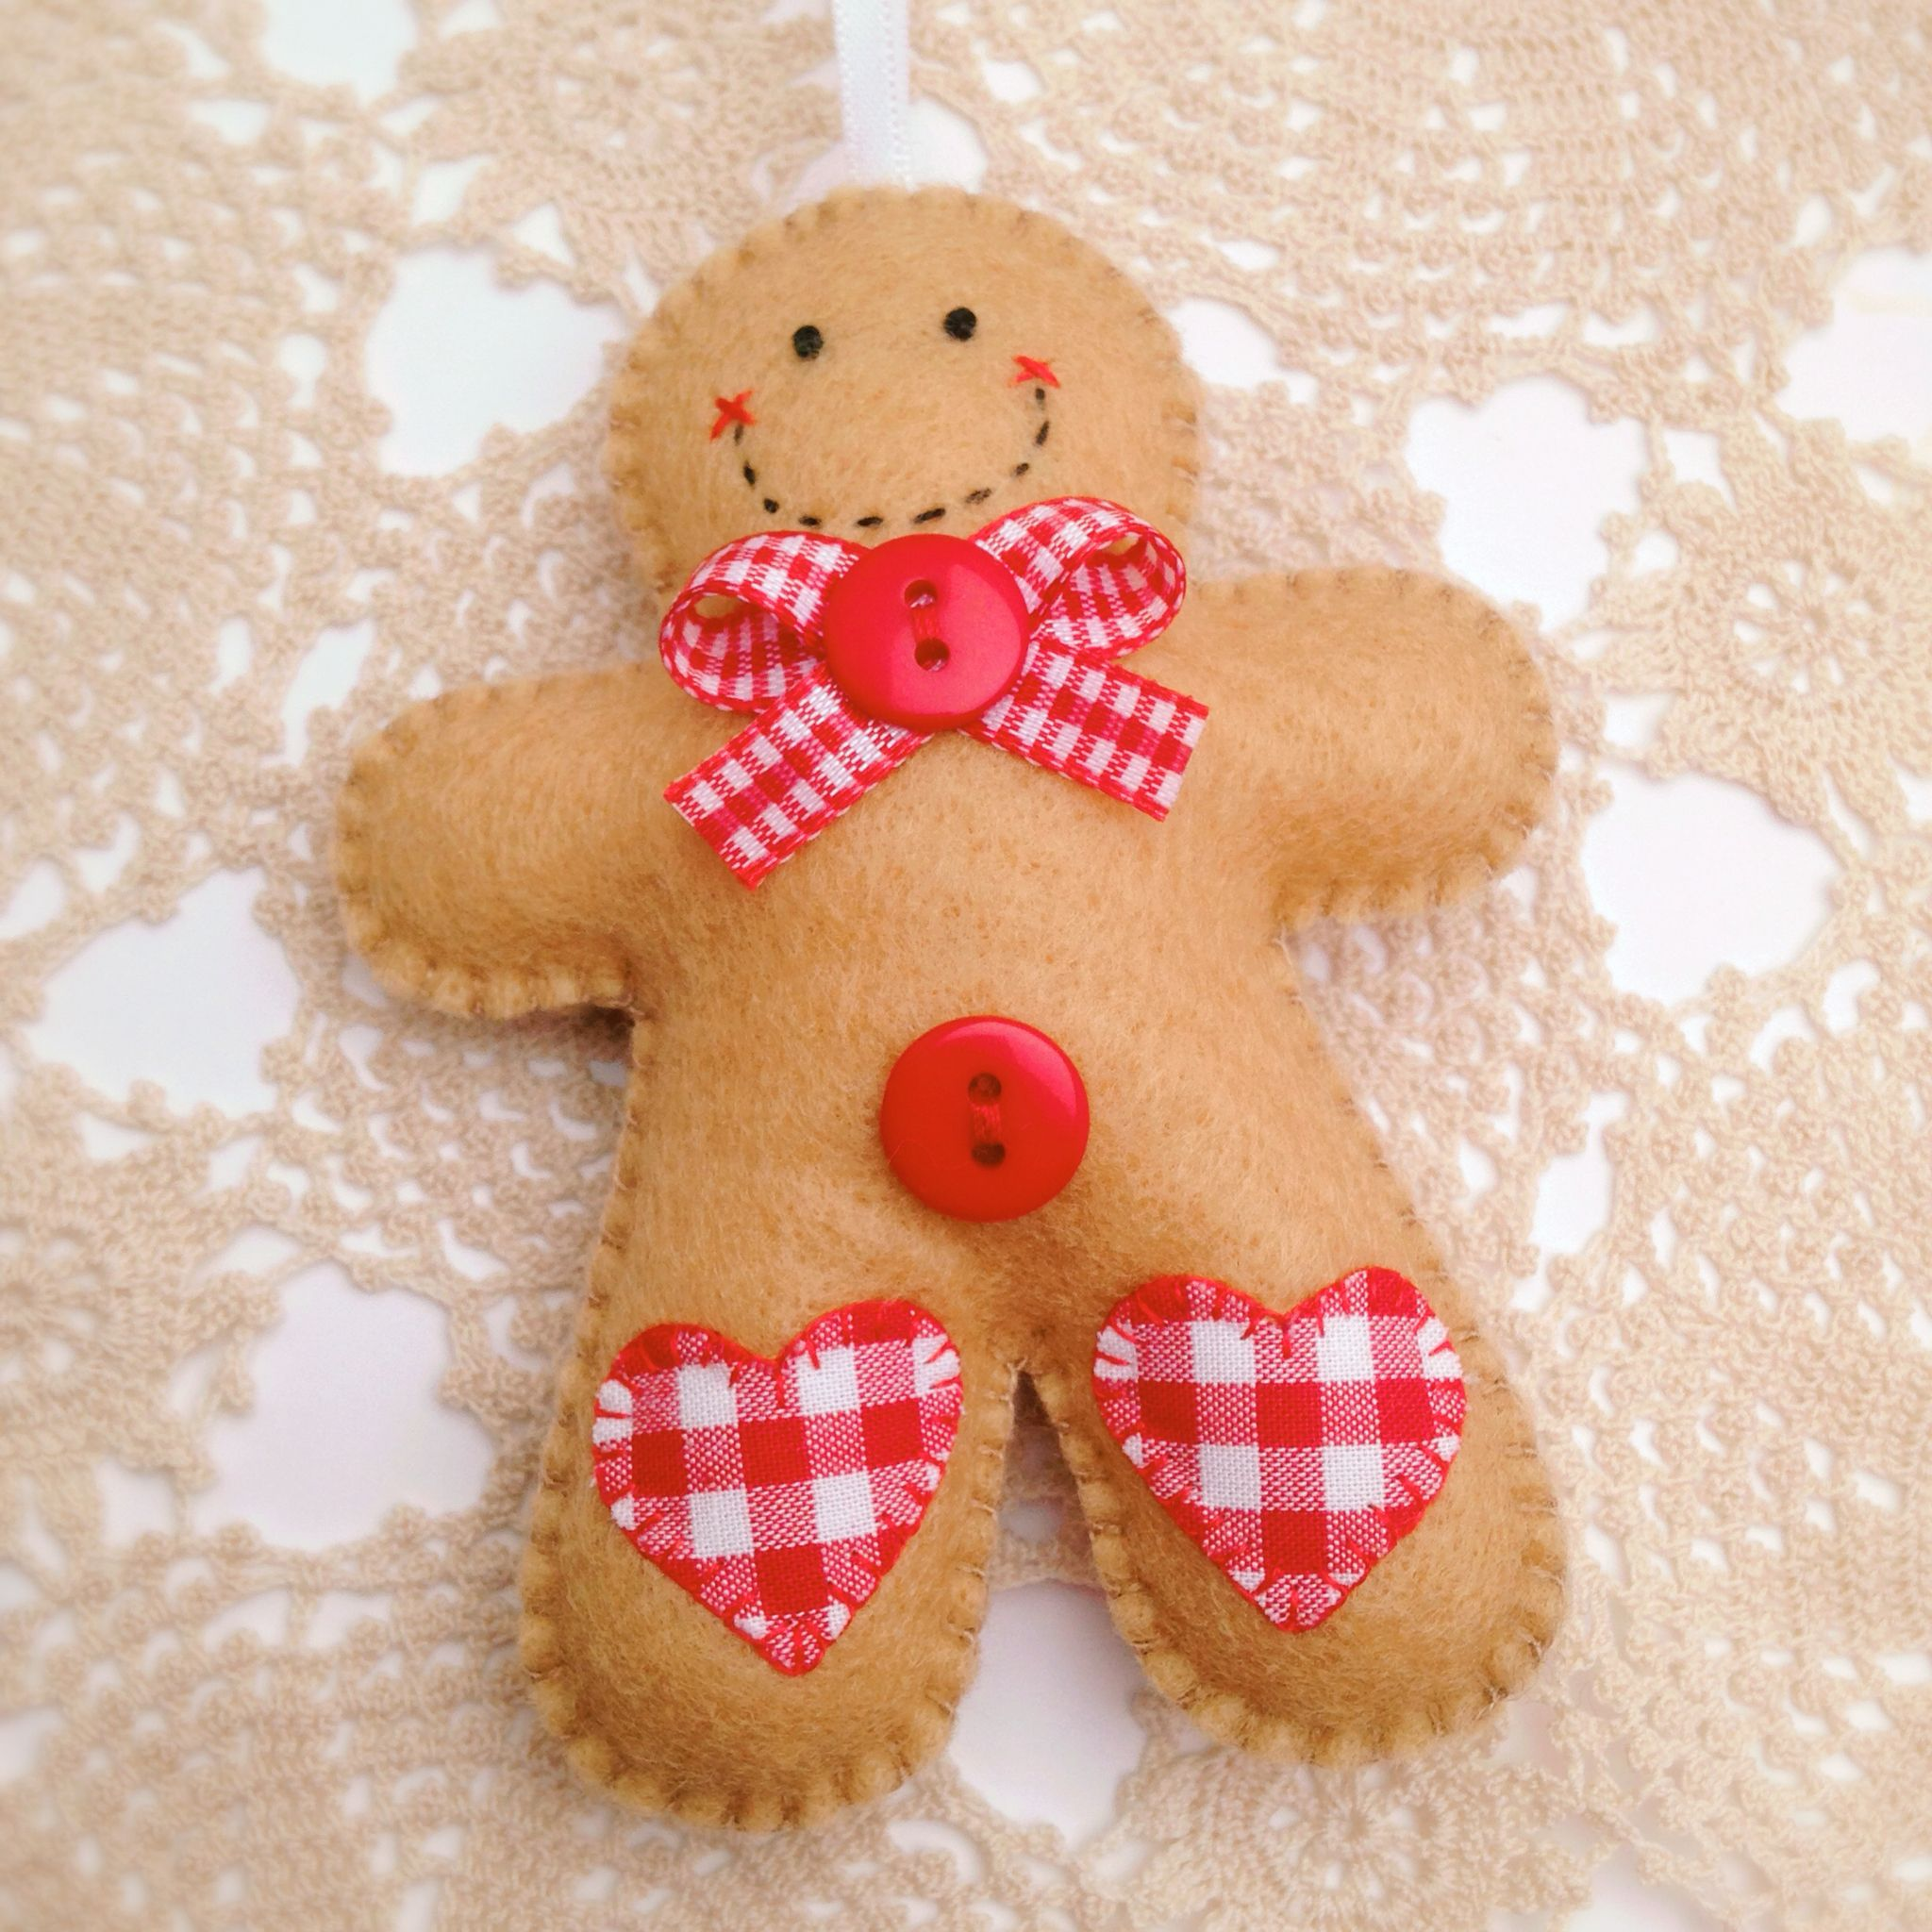 Hand Stitched Felt Gingerbread Man Christmas Ornaments Felt